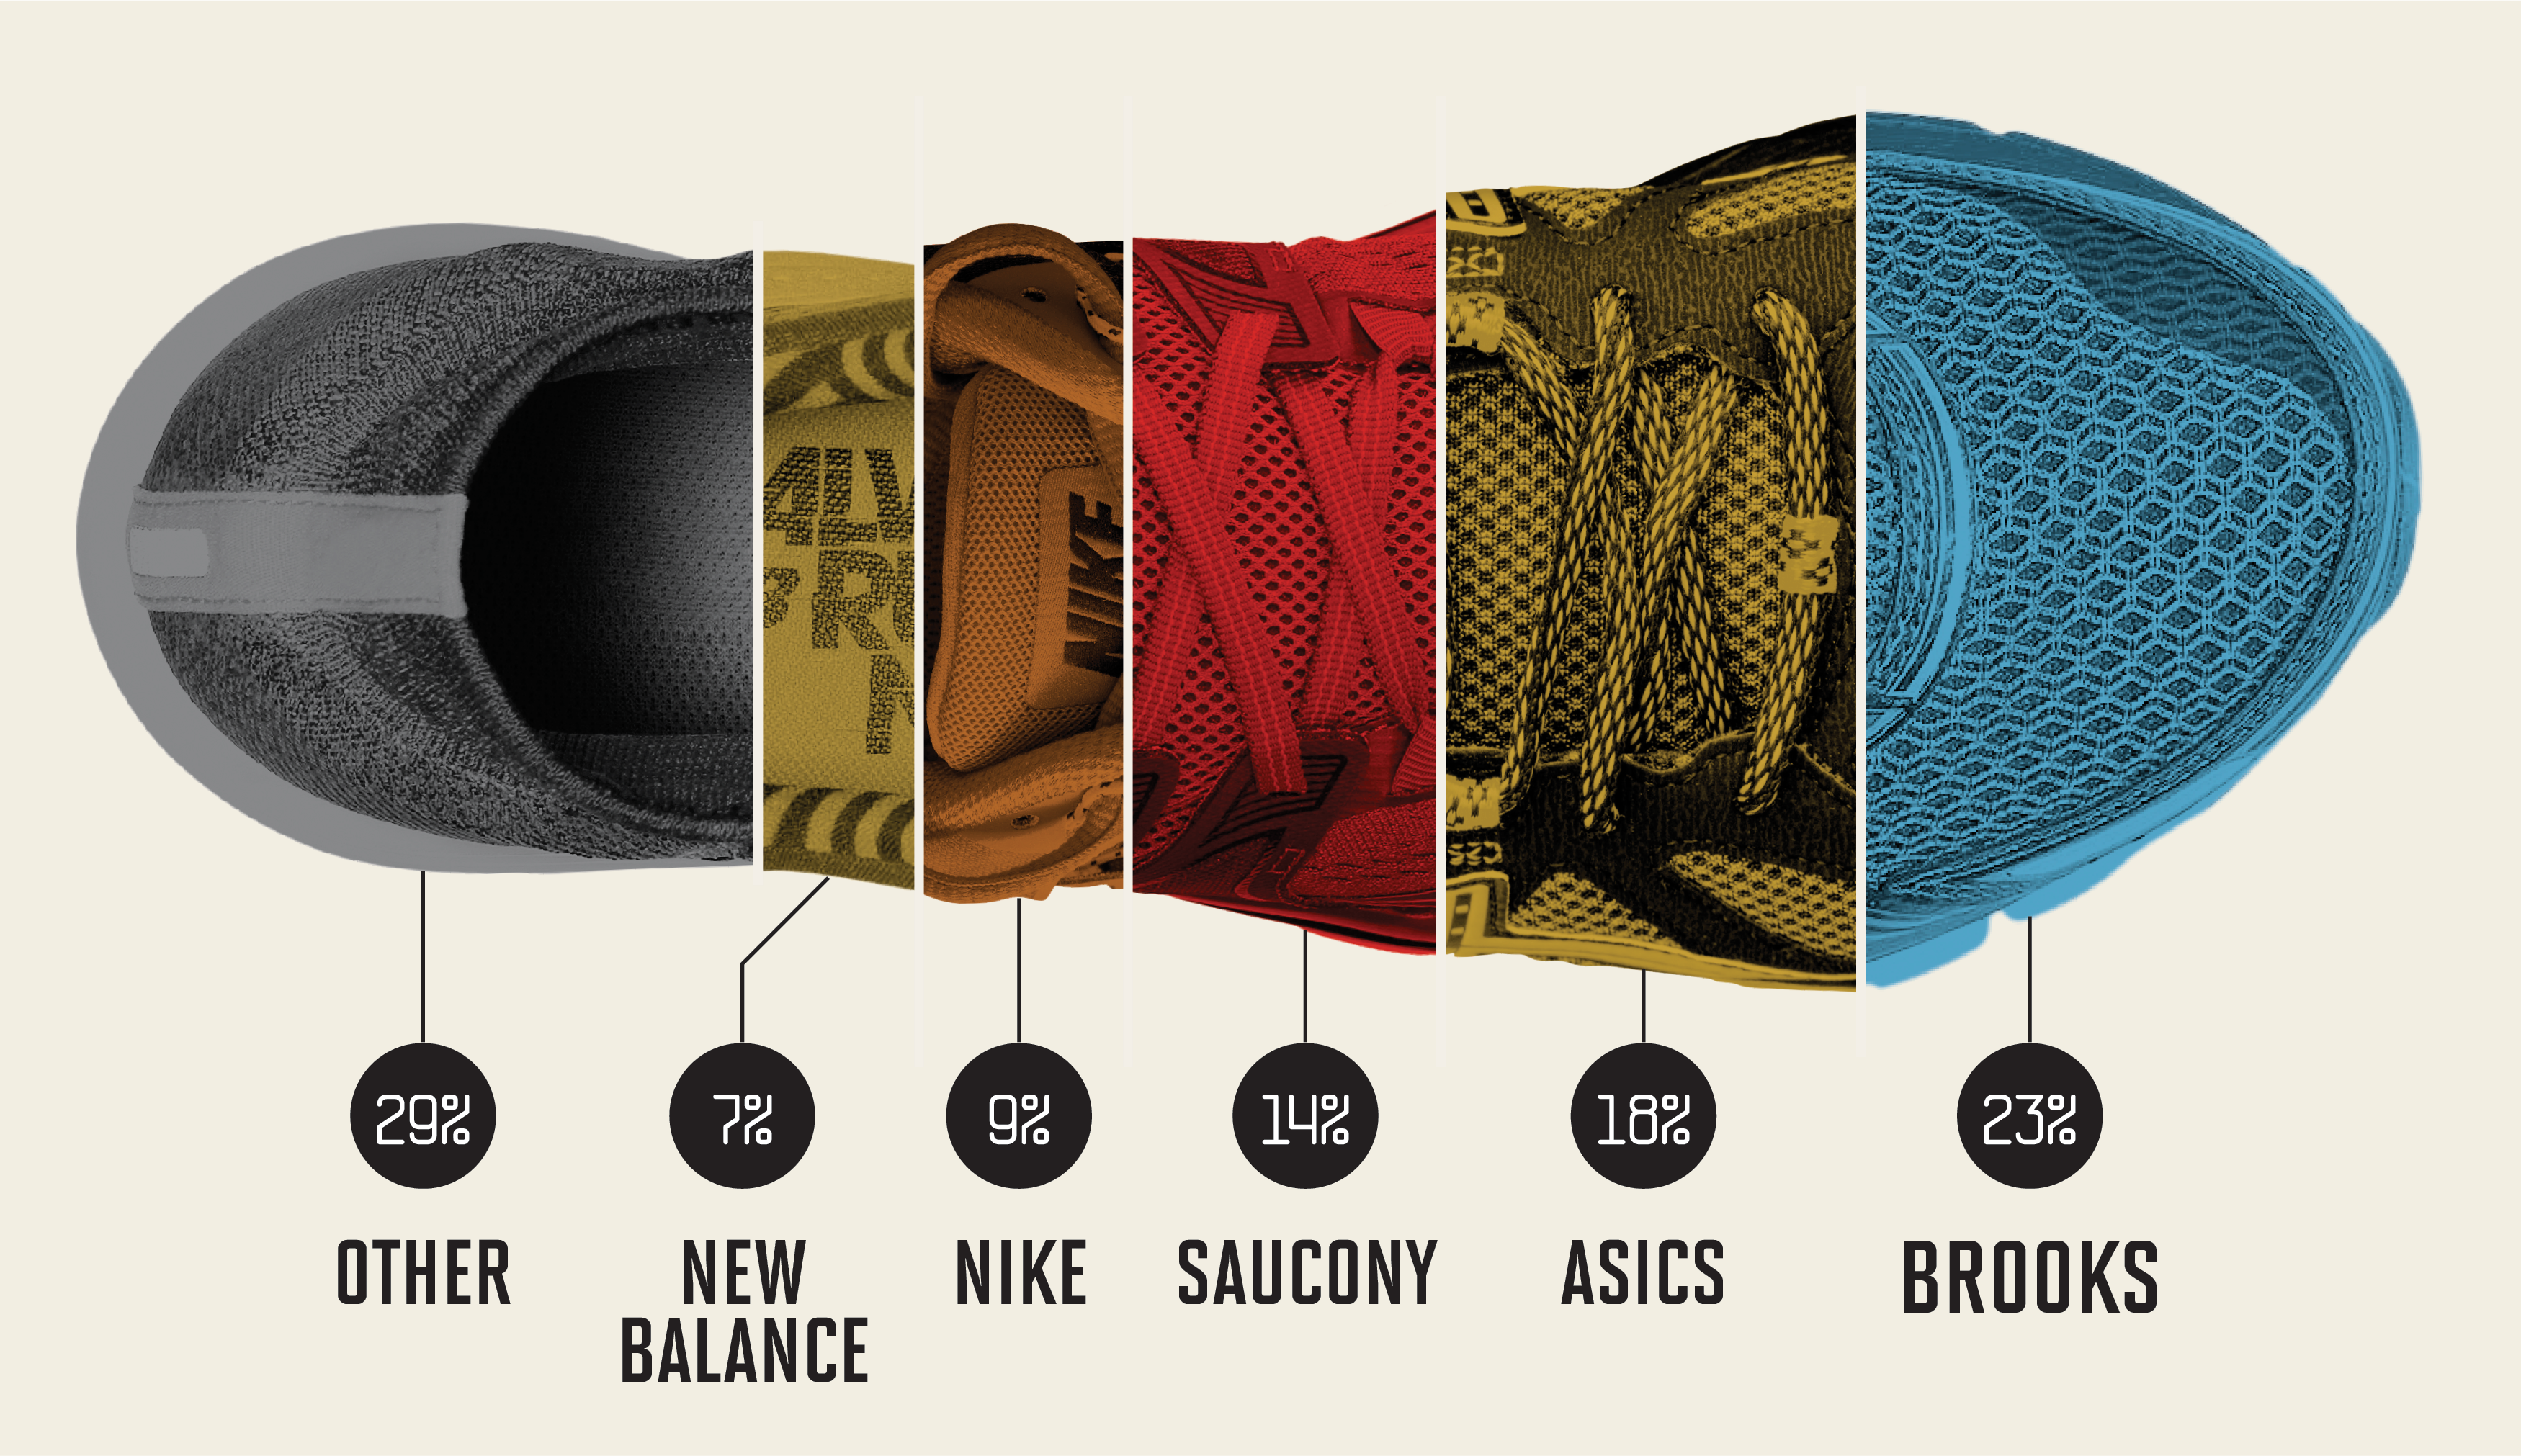 Nike, Brooks, Adidas Running Shoes: Who's Winning This